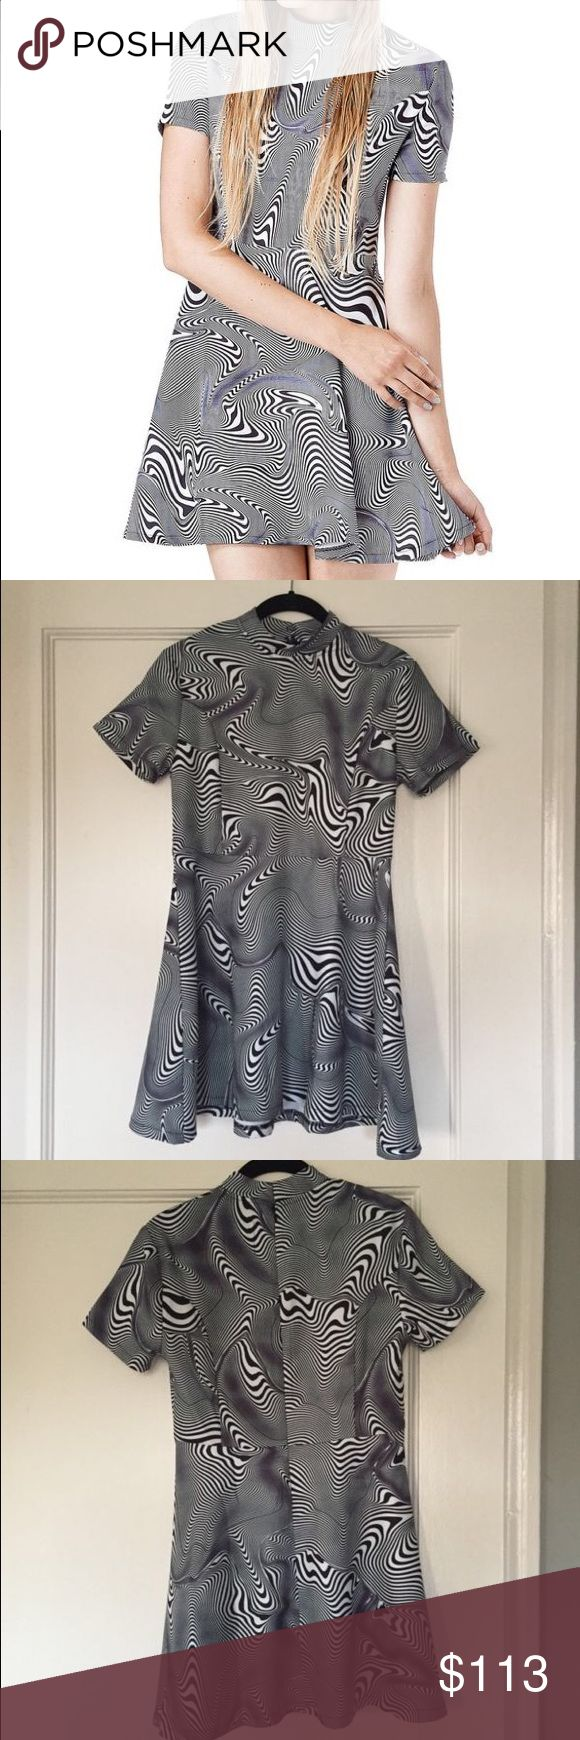 MEGA RARE Unif Cid Dress SUPER RARE NWT Unif Cid Mini Dress. Size medium but can fit small as well. Crafted in a trippy, optical print for an offbeat vibe; featuring a high neck and short sleeves. This dress is a must-have for any bad babe! Asking $90 OBO on depop or 🅿️🅿️ lyk omighty aa Brandy uo urban American outfitters apparel Dollskill lazy oaf grunge rave asos topshop 💕I JUST WANNA SELL SO I HAVE MONEY FOR MY BDAY IN A WEEK SO FEEL FREE TO MAKE OFFERS💕 UNIF Dresses Mini